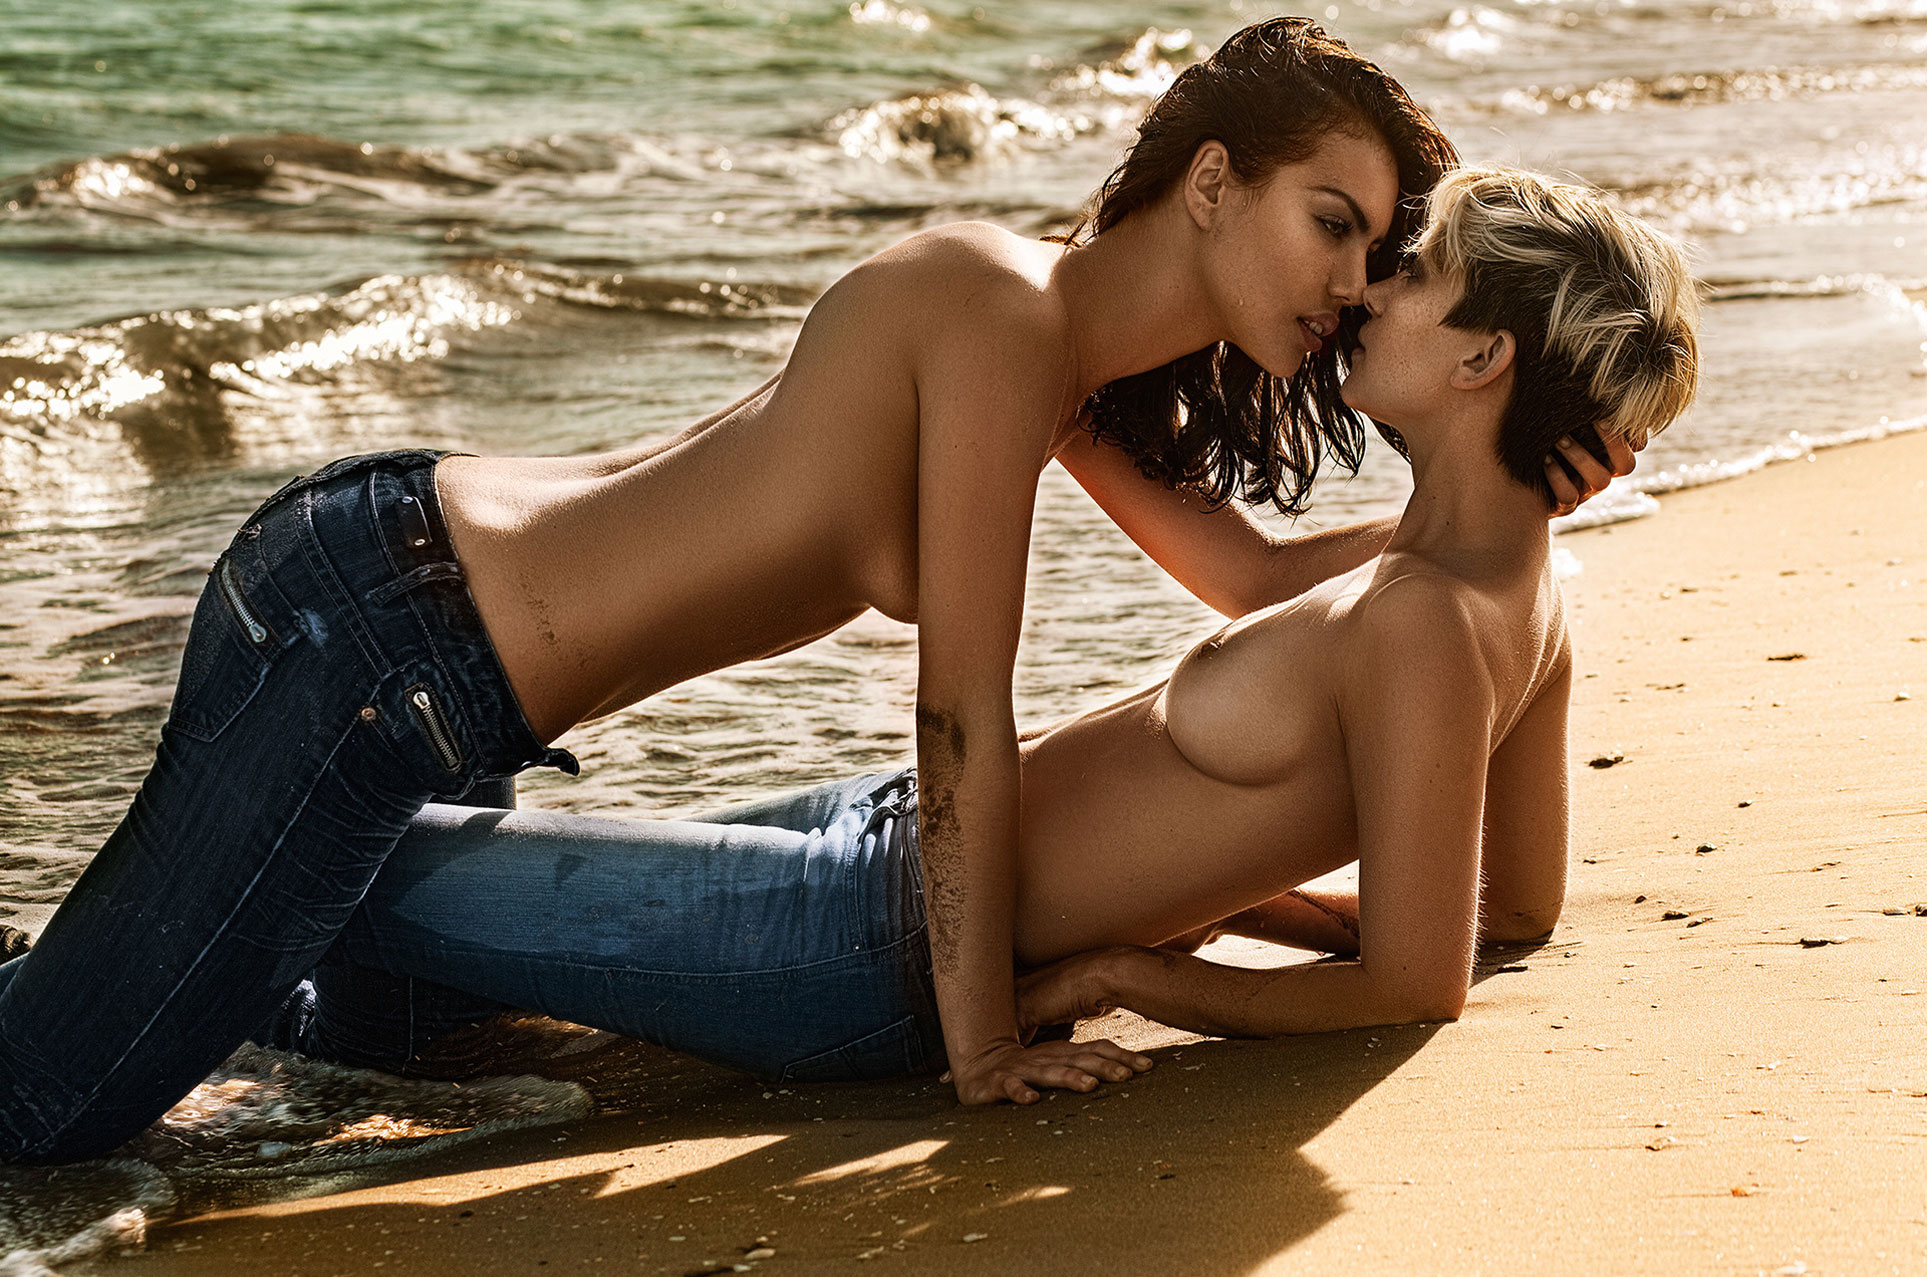 Alicia Tadrist and Emilie Dcty naked by Stefan Bourson